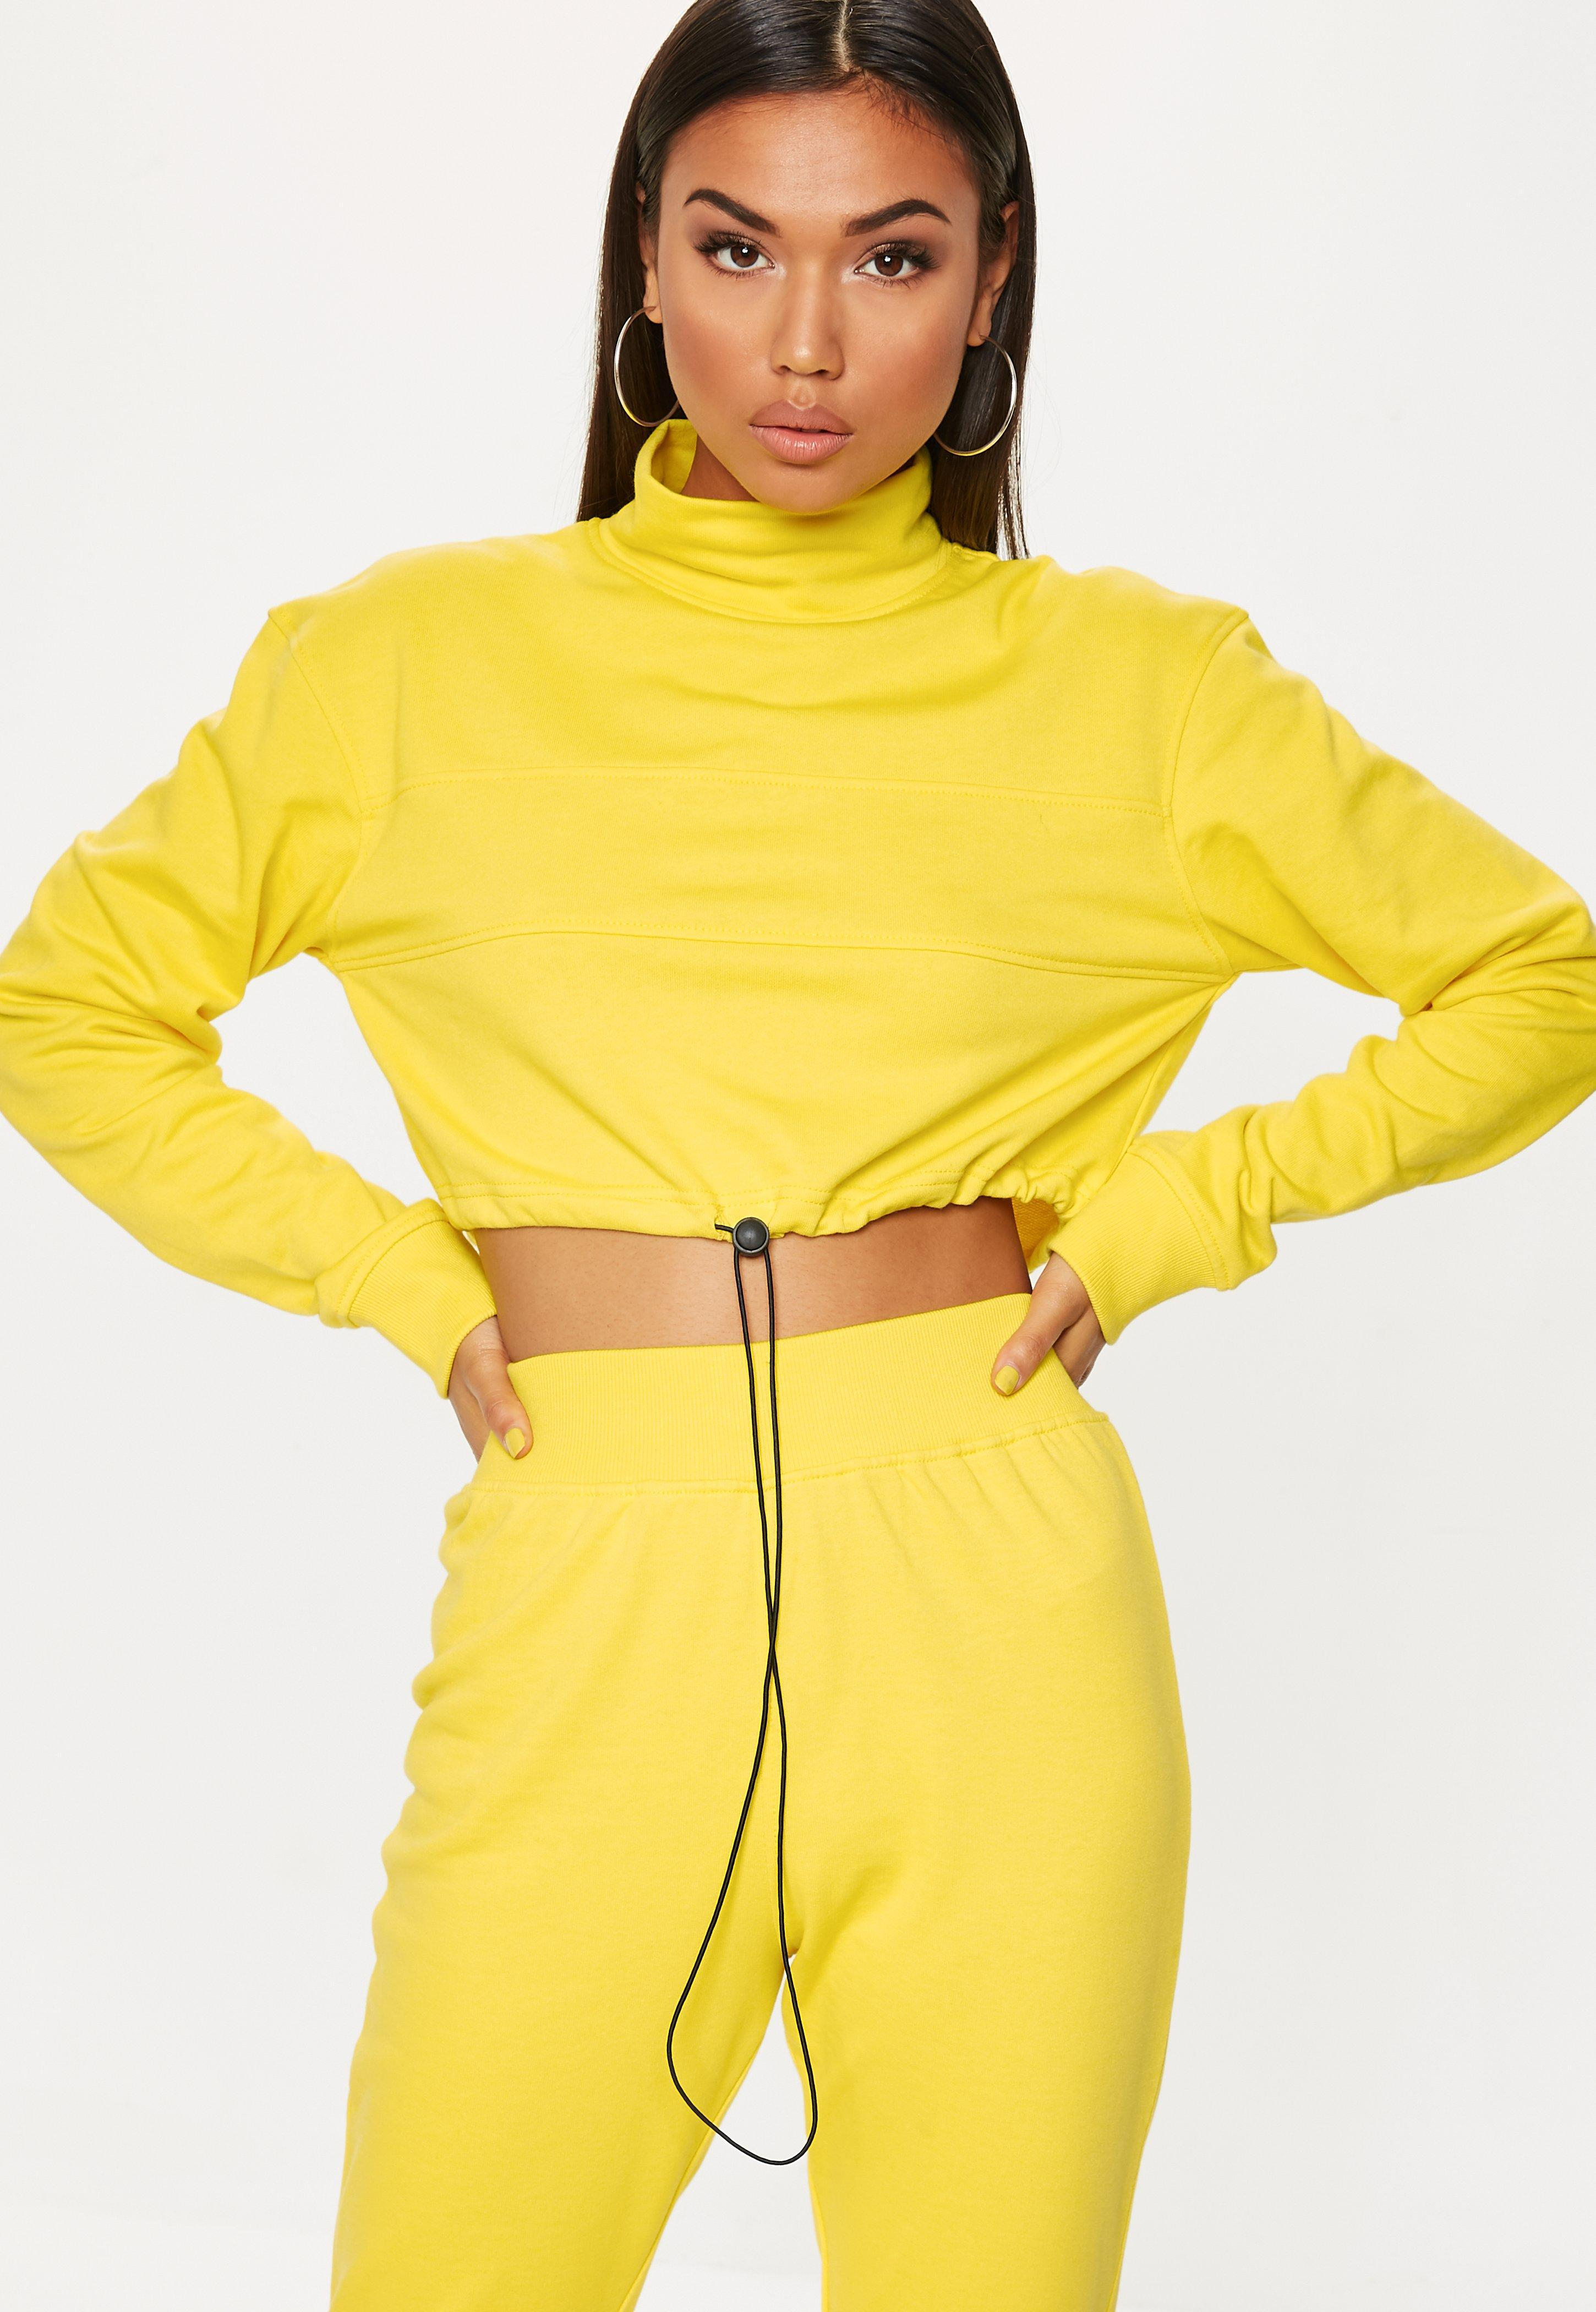 638c06fc6 Lyst - Missguided Yellow High Neck Drawstring Cropped Hoodie in Yellow